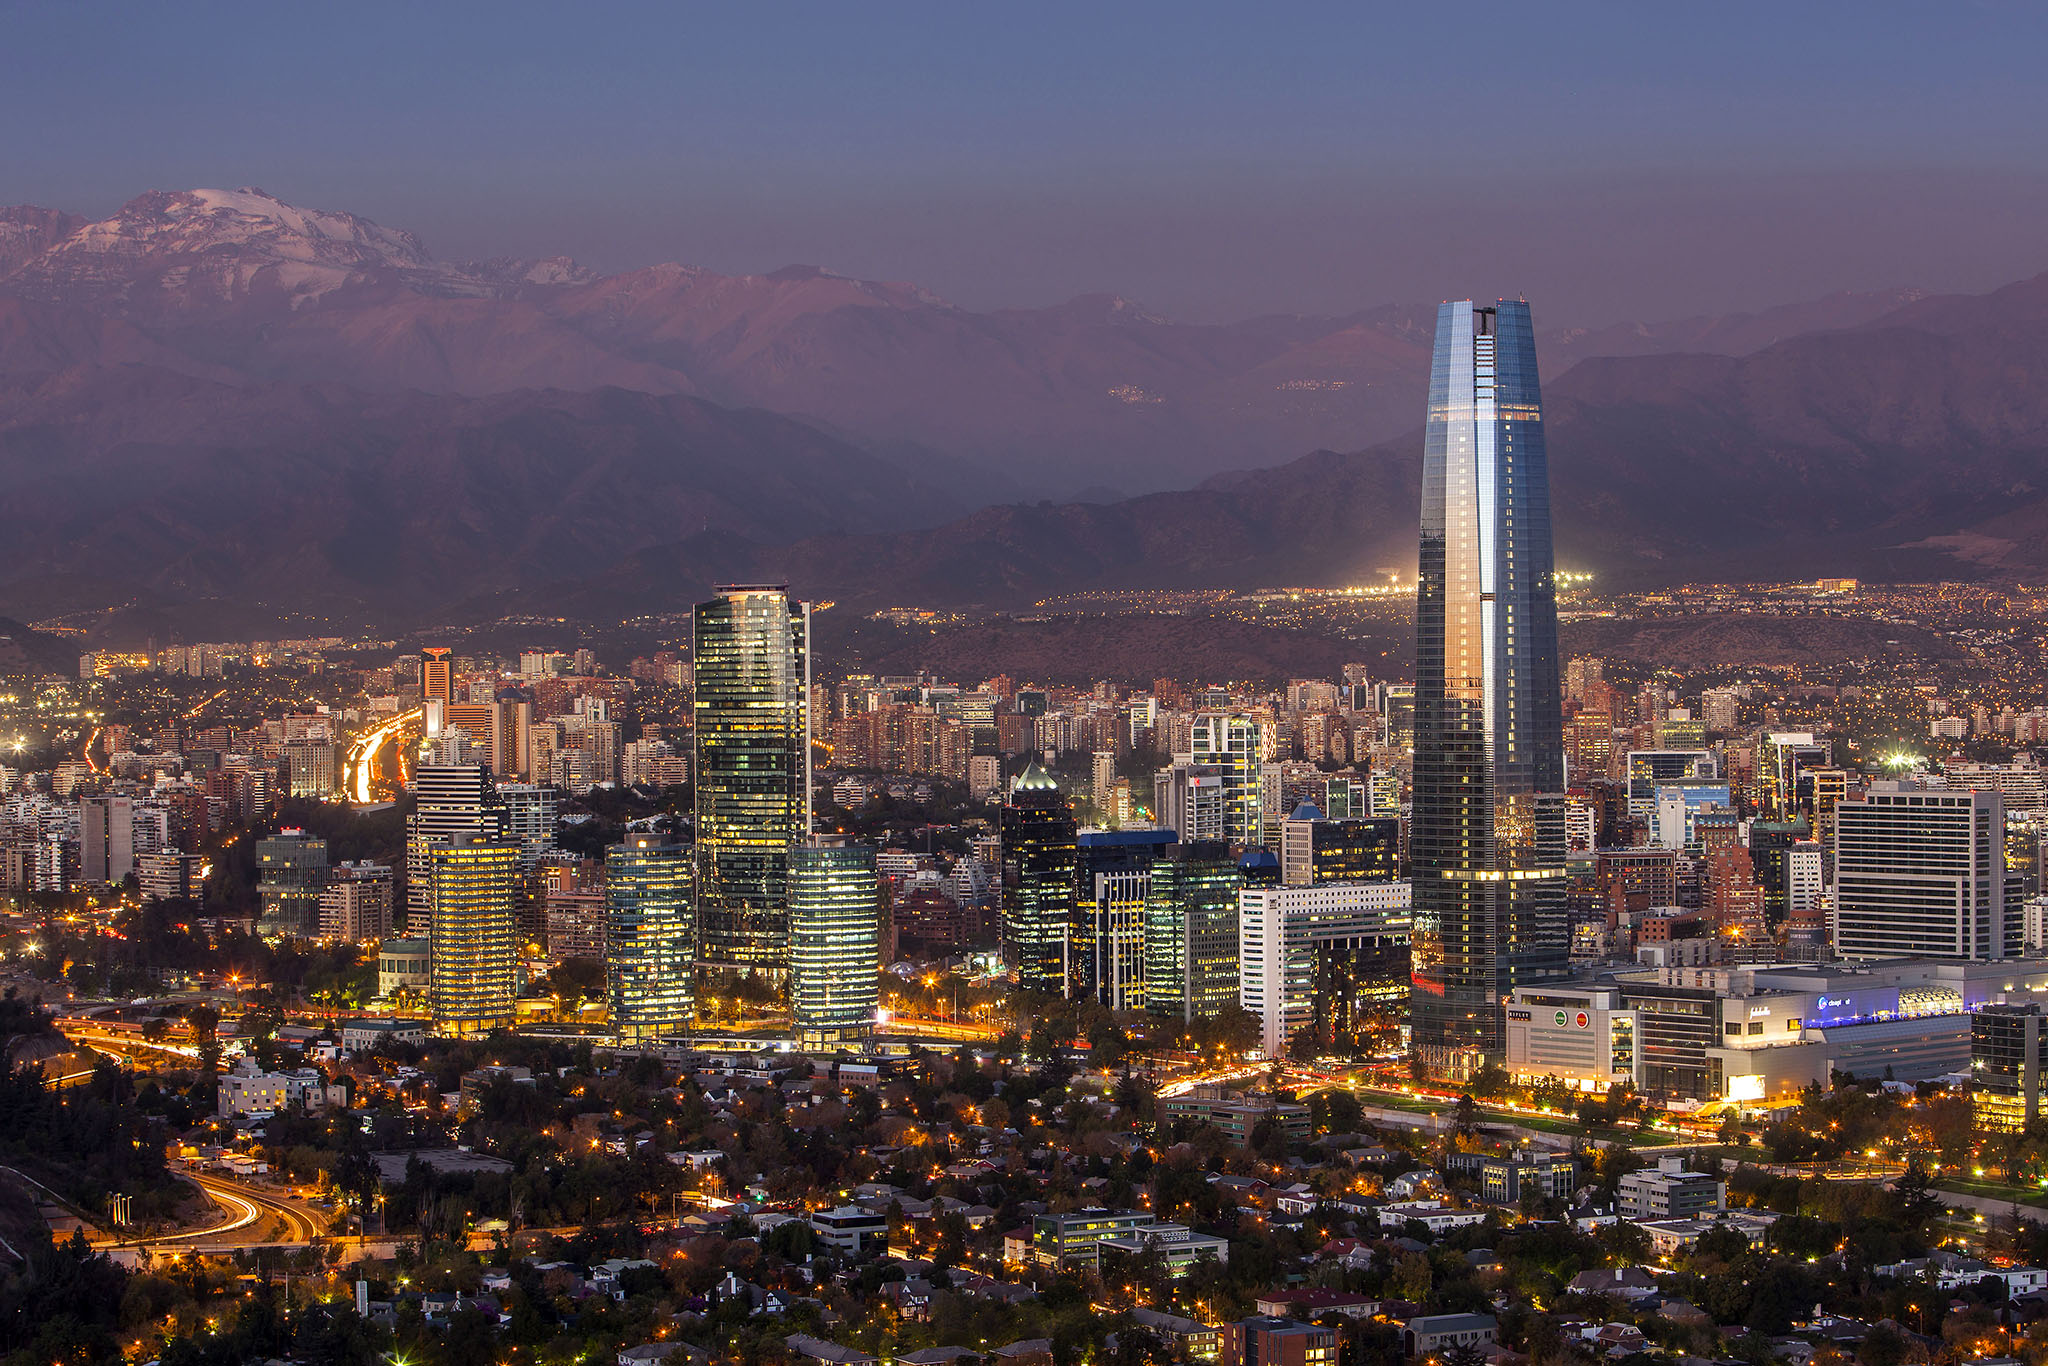 panorama of Santiago (Providencia buildings and the Gran Torre Santiago tower) and Andes Mountains, Santiago, Chile.